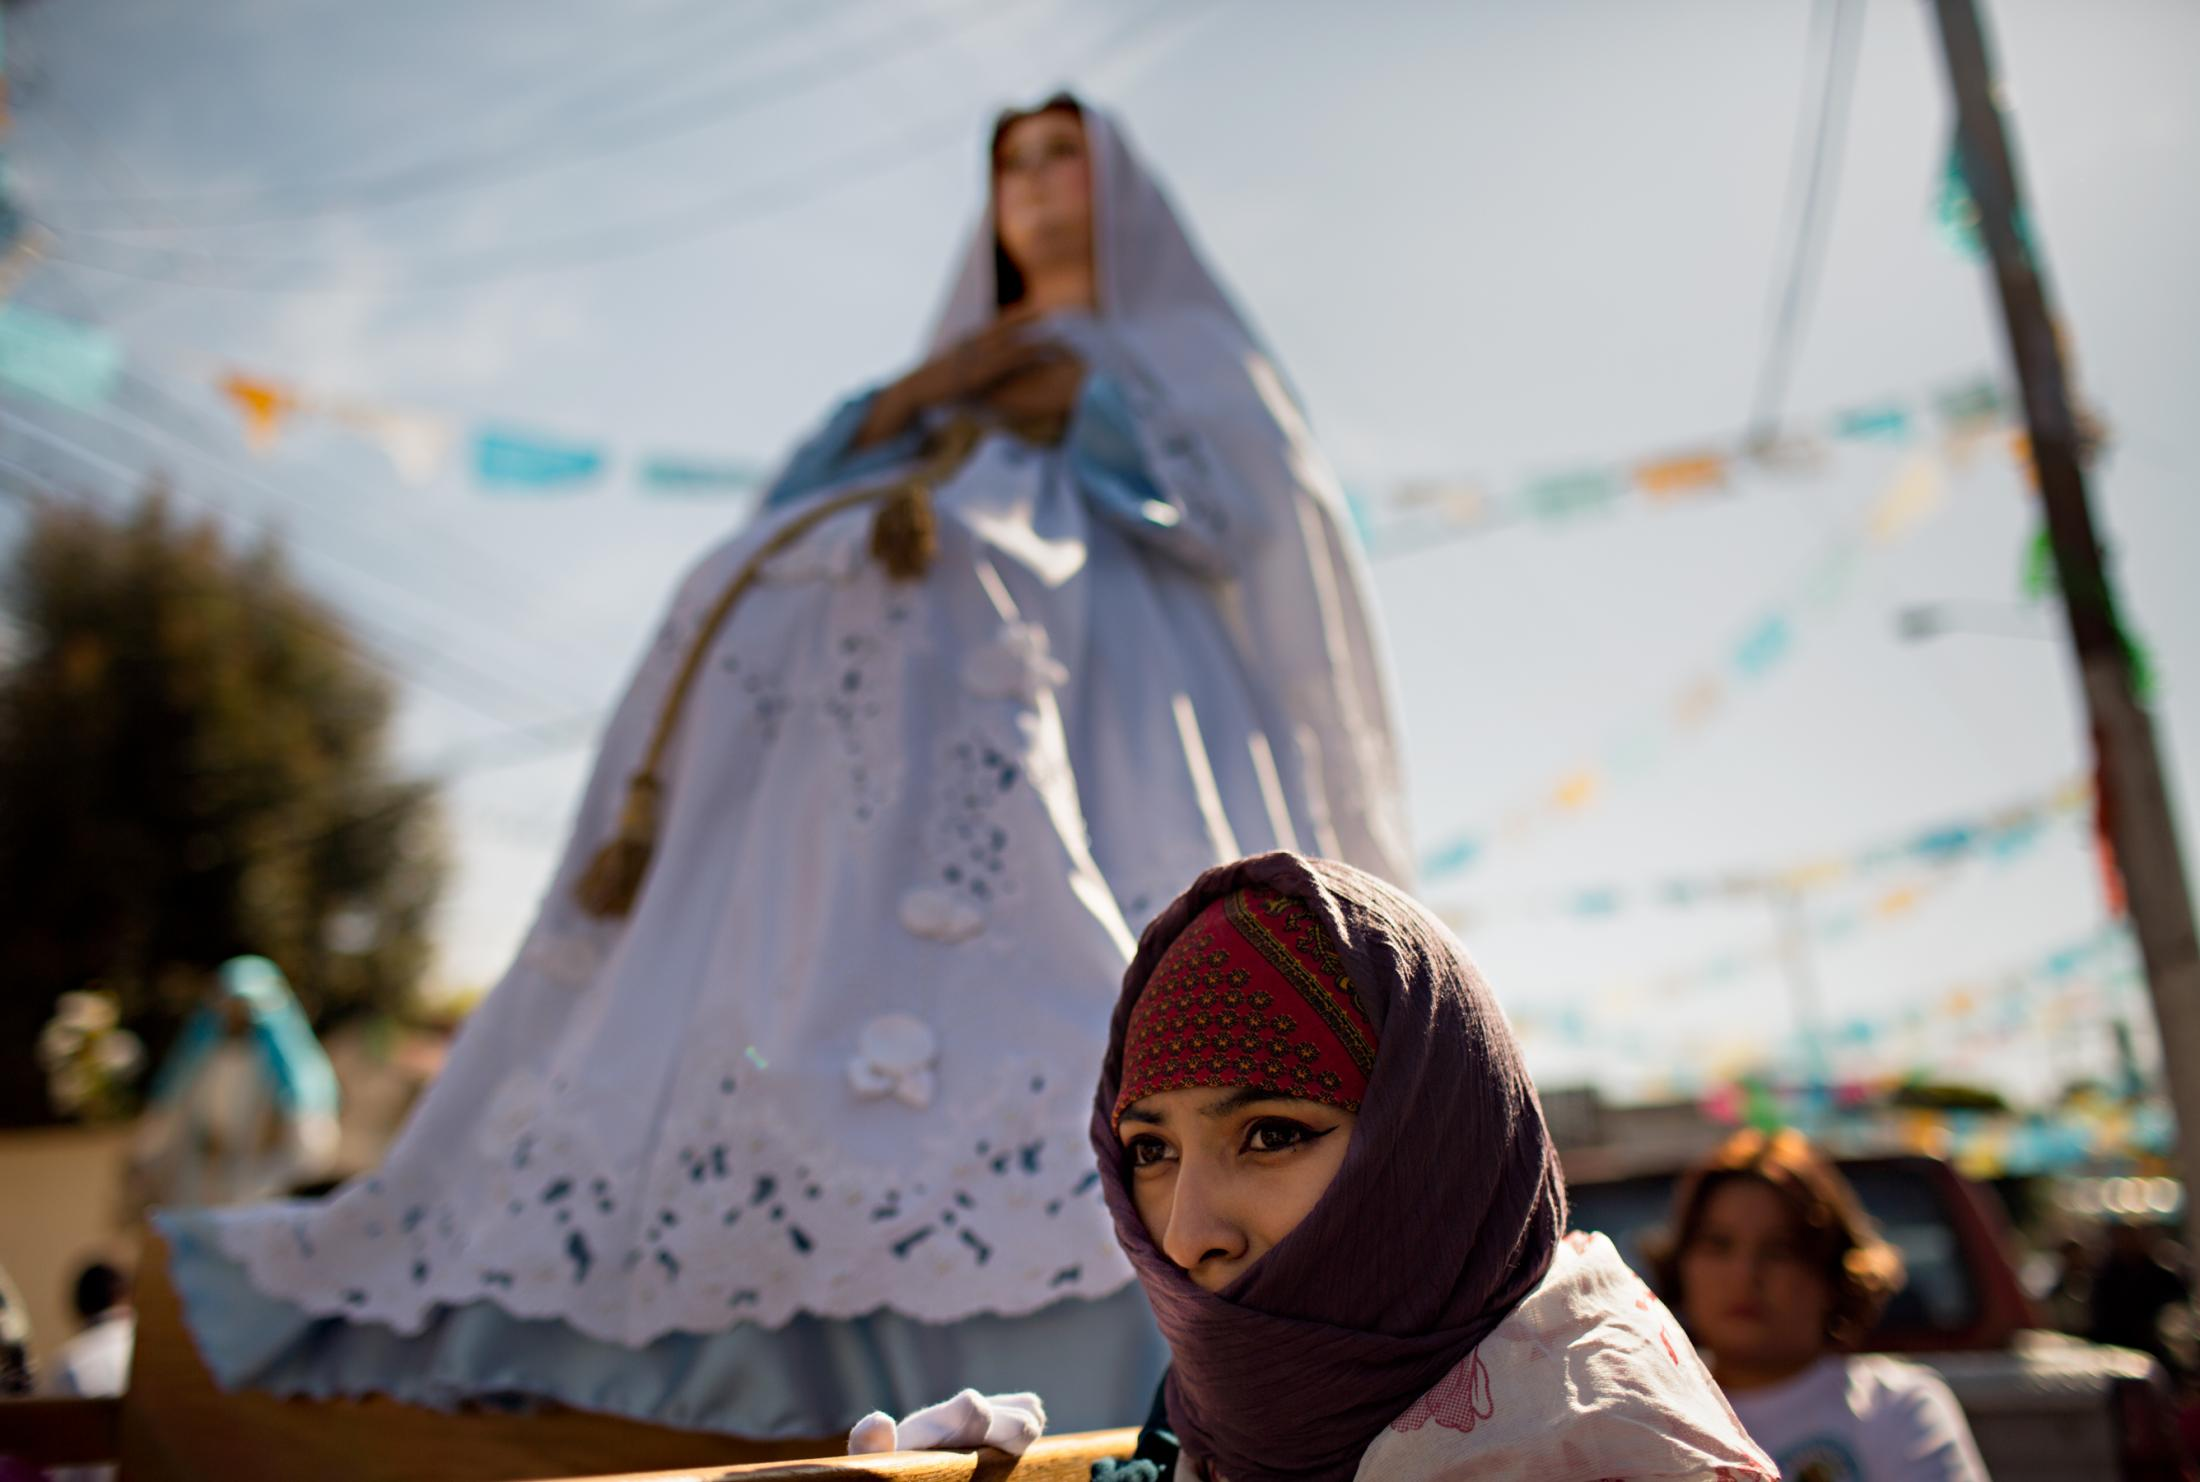 A worshiper holds a sculpture representing the Virgin Mary during the procession to the 16th Century San Bernardino de Siena Church in Xochimilco. On this day, the old 2018 Majordomo will hand the Niño to the new Majordomo.